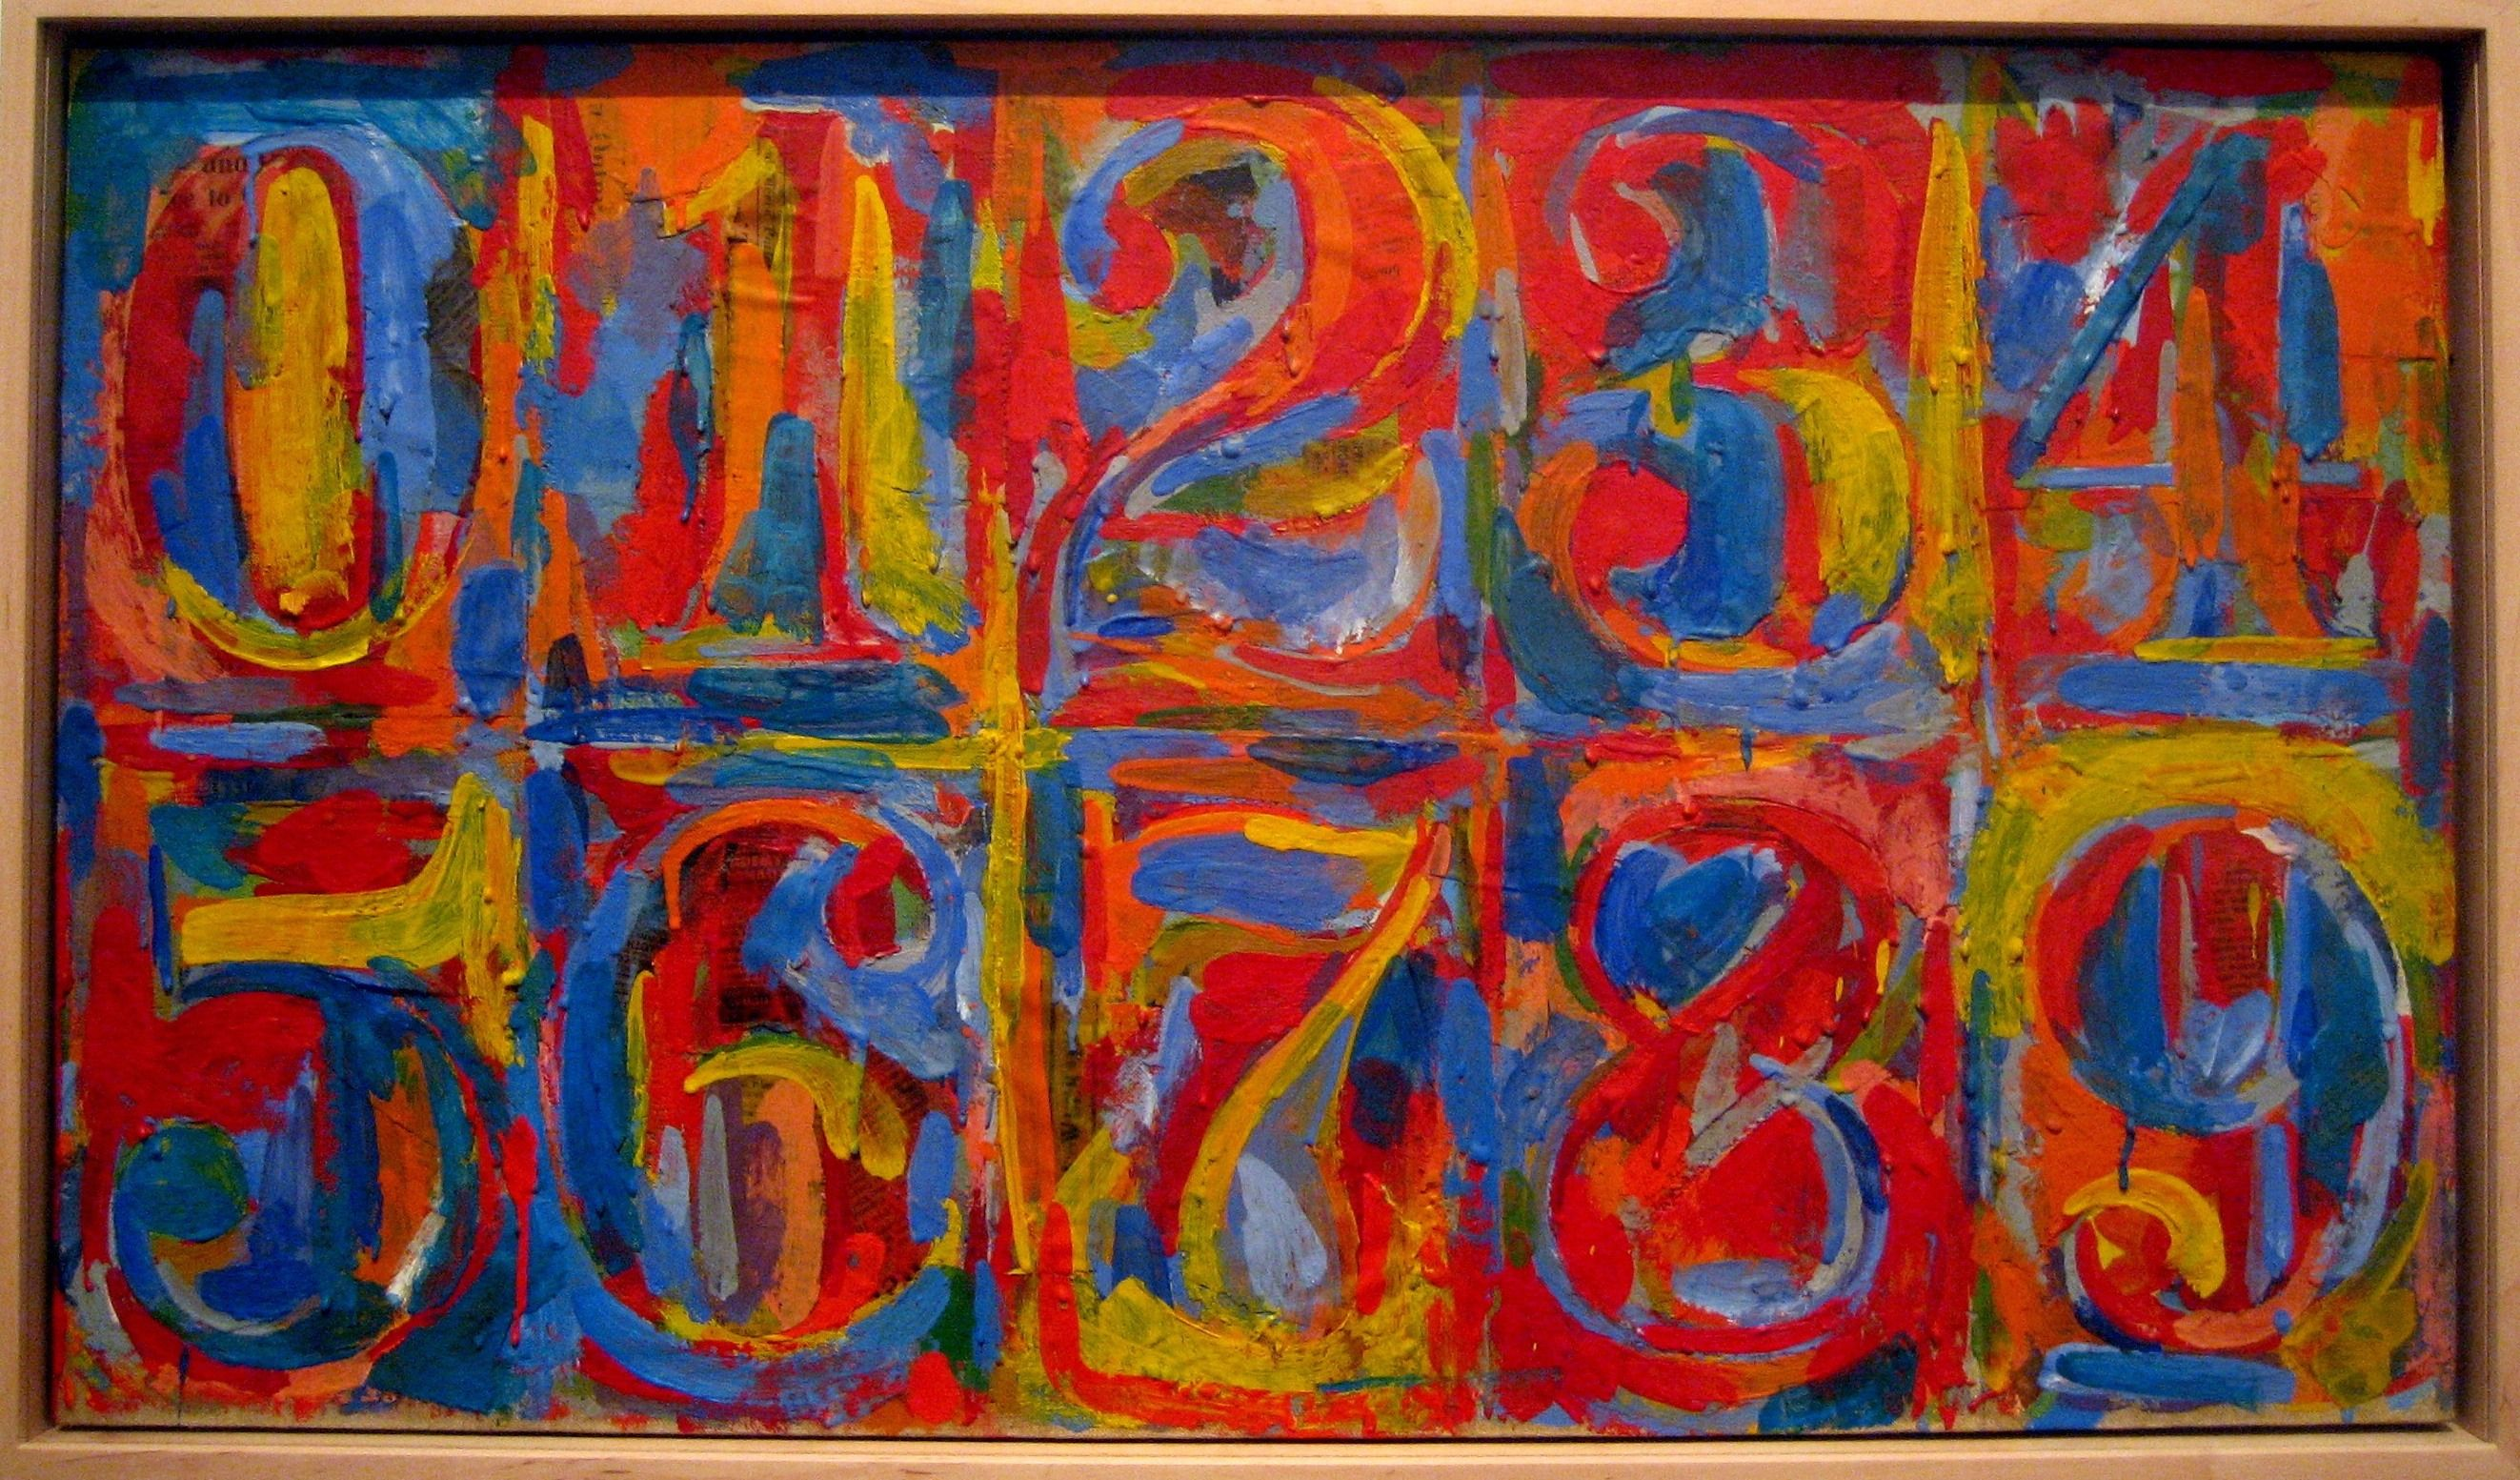 Jasper Johns Like The Use Of Symbolism And Colour Again Has A Very